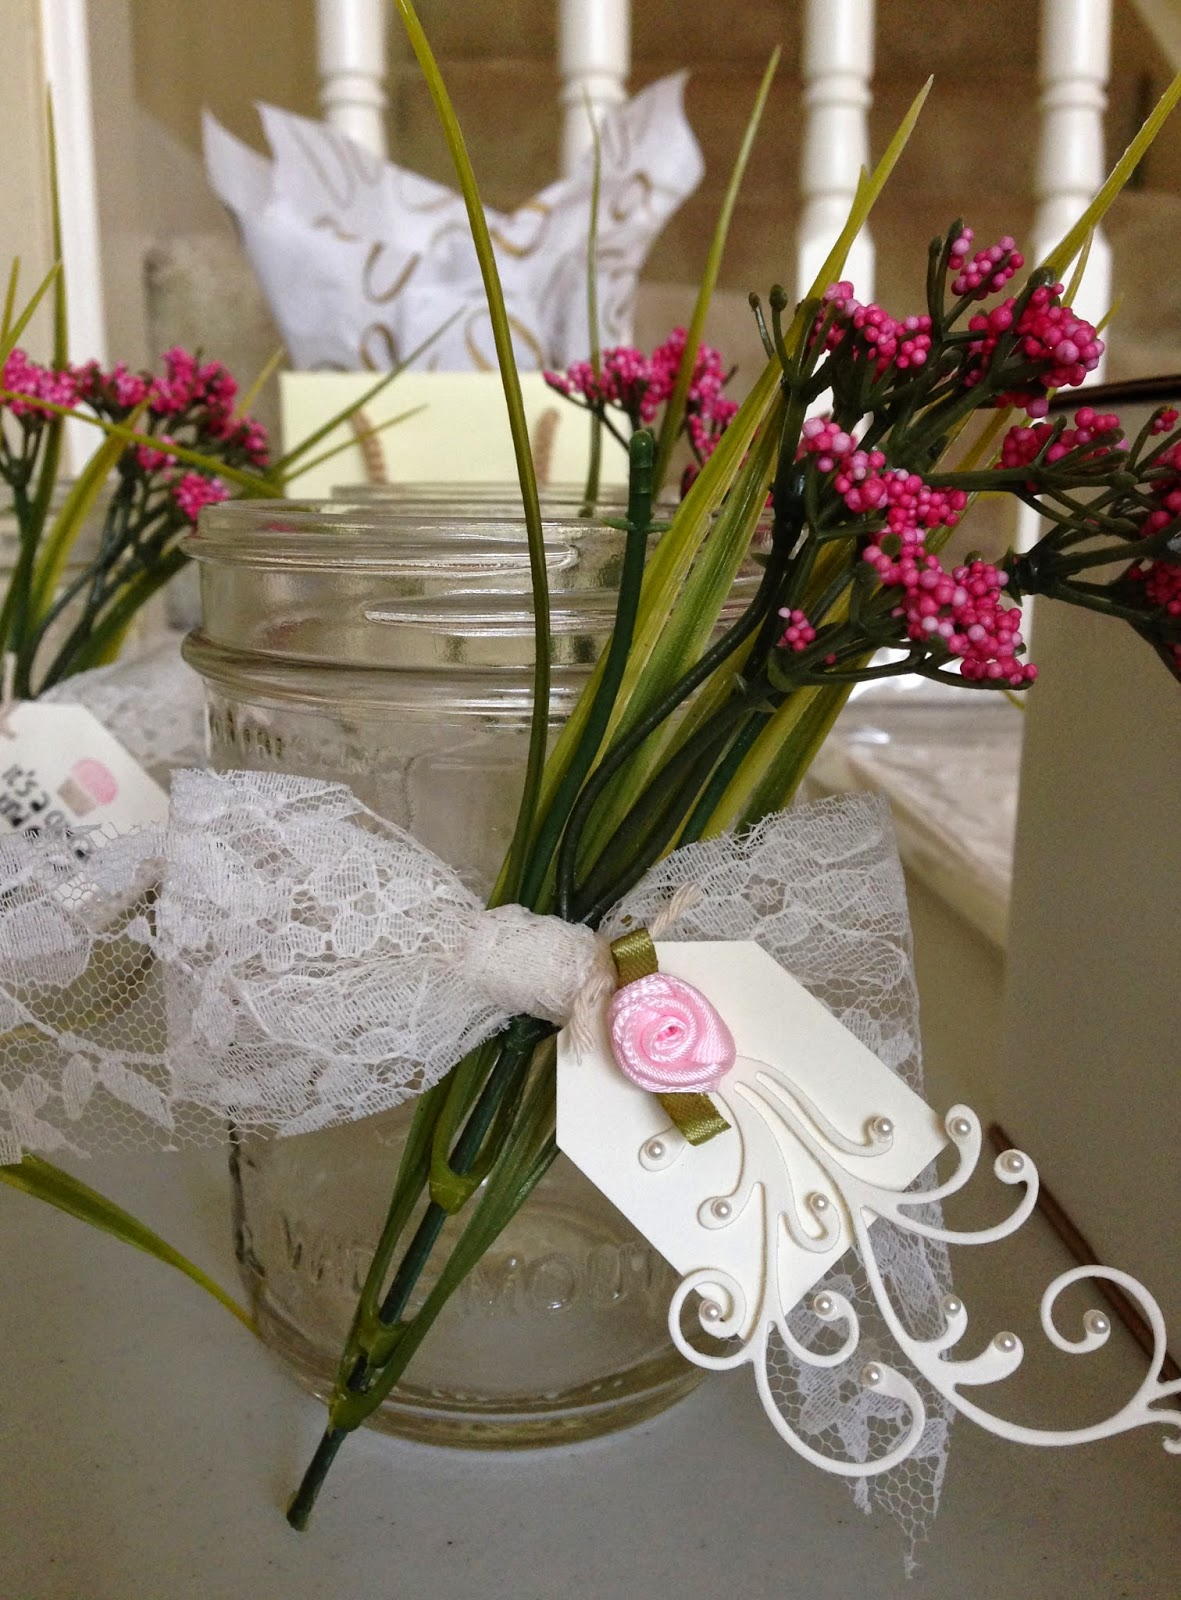 These Were The Centerpieces That Went On All Tables